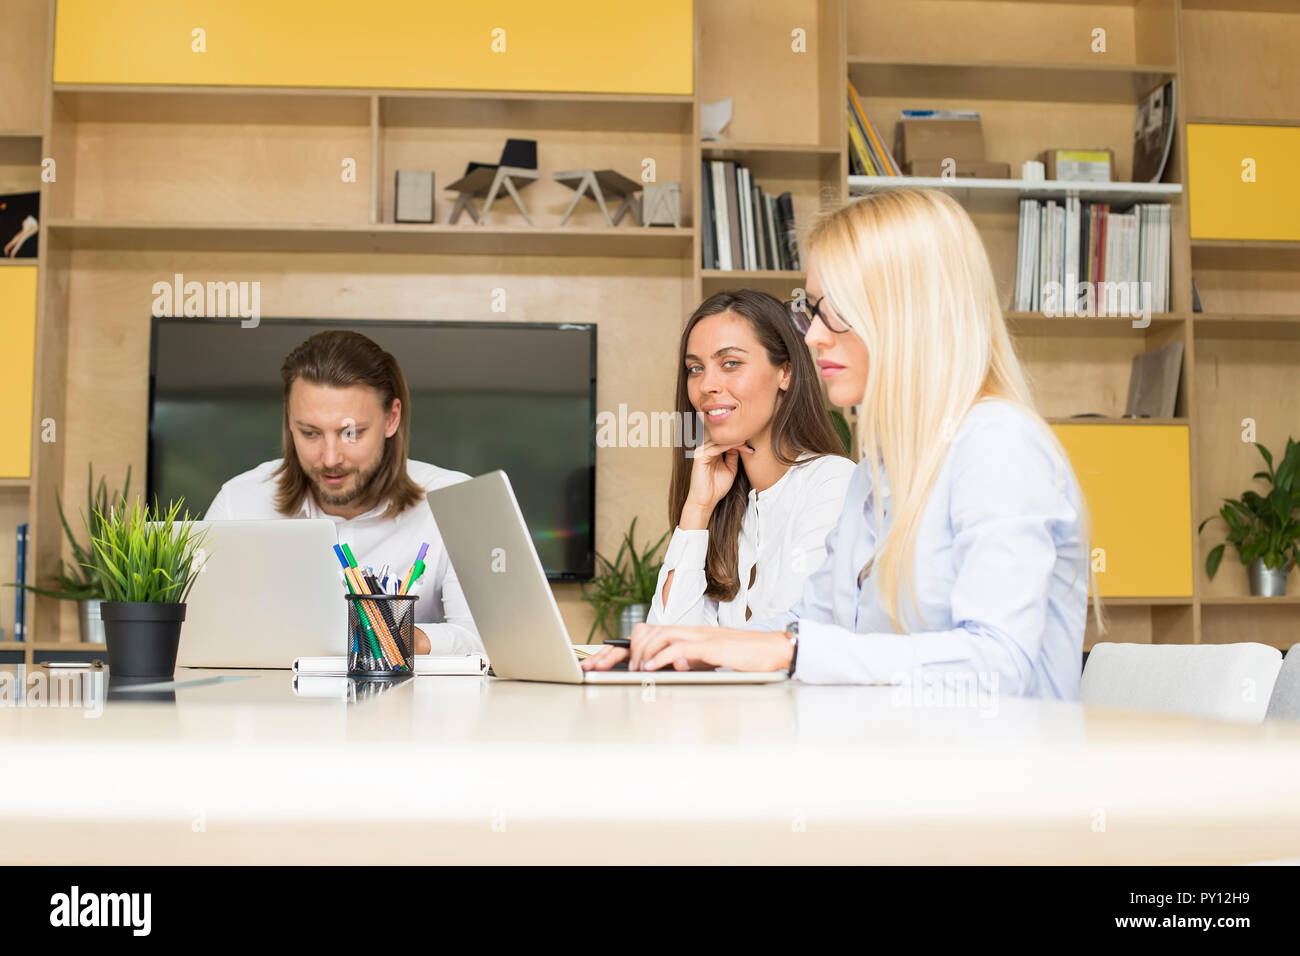 Cheerfull business team working together to achieve better results - Stock Image